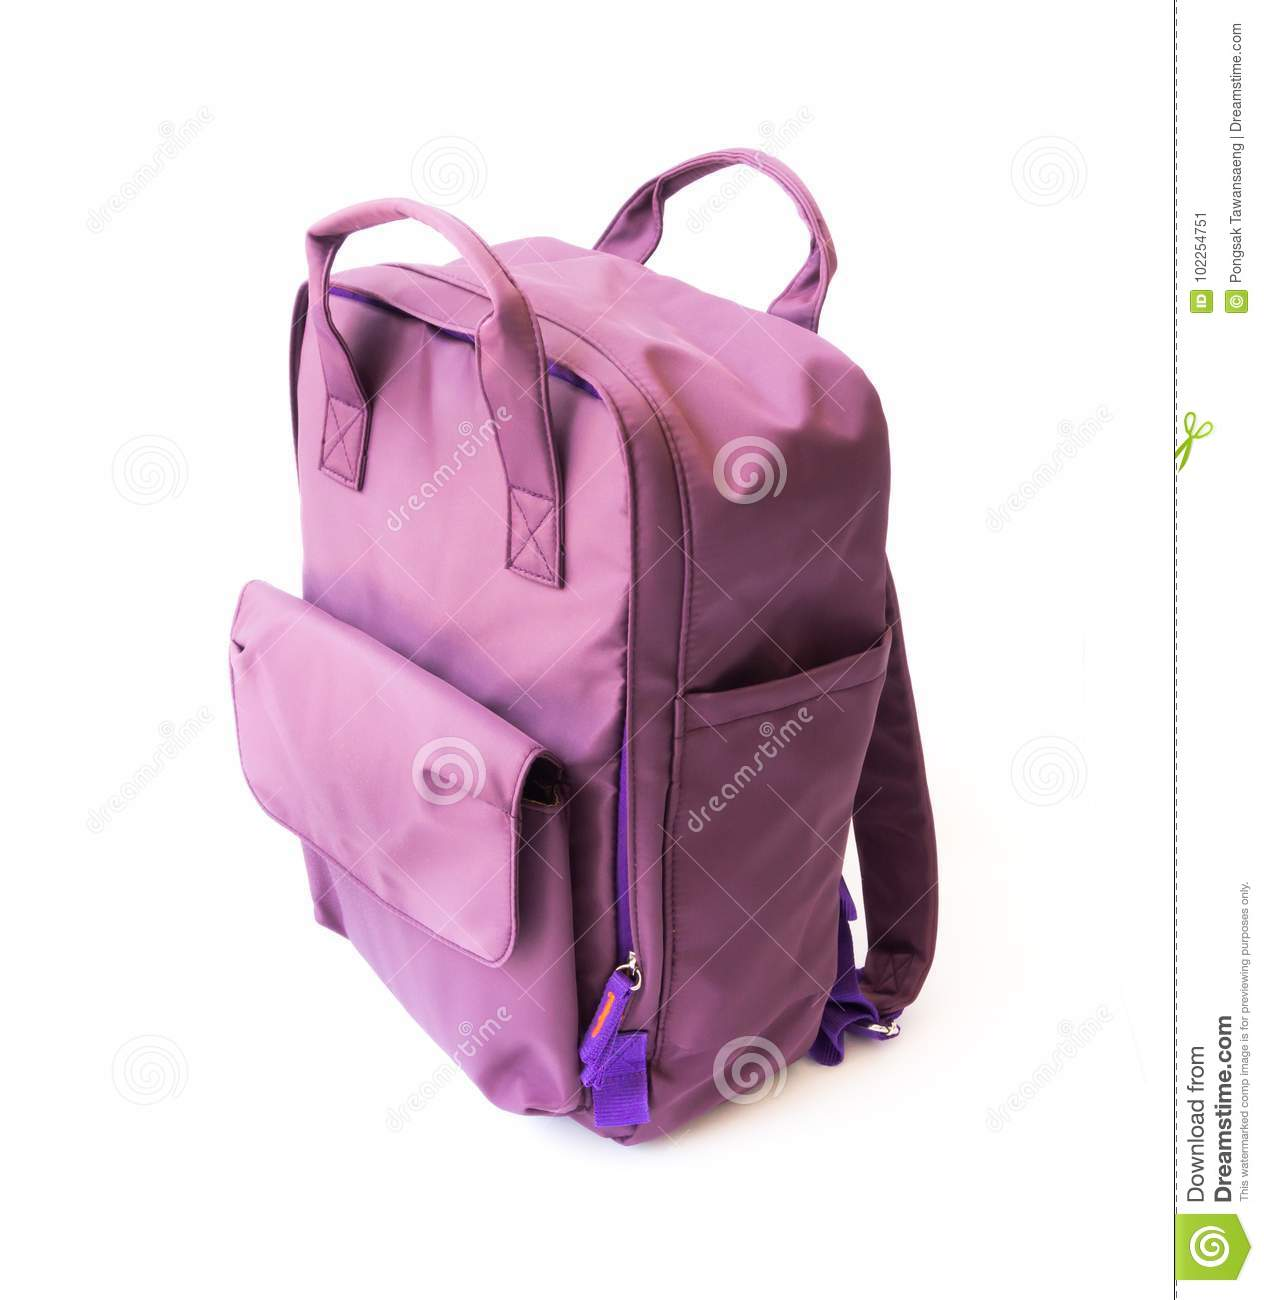 Purple backpack on white background for school or tourist traveler concept 19f077c7d31d3